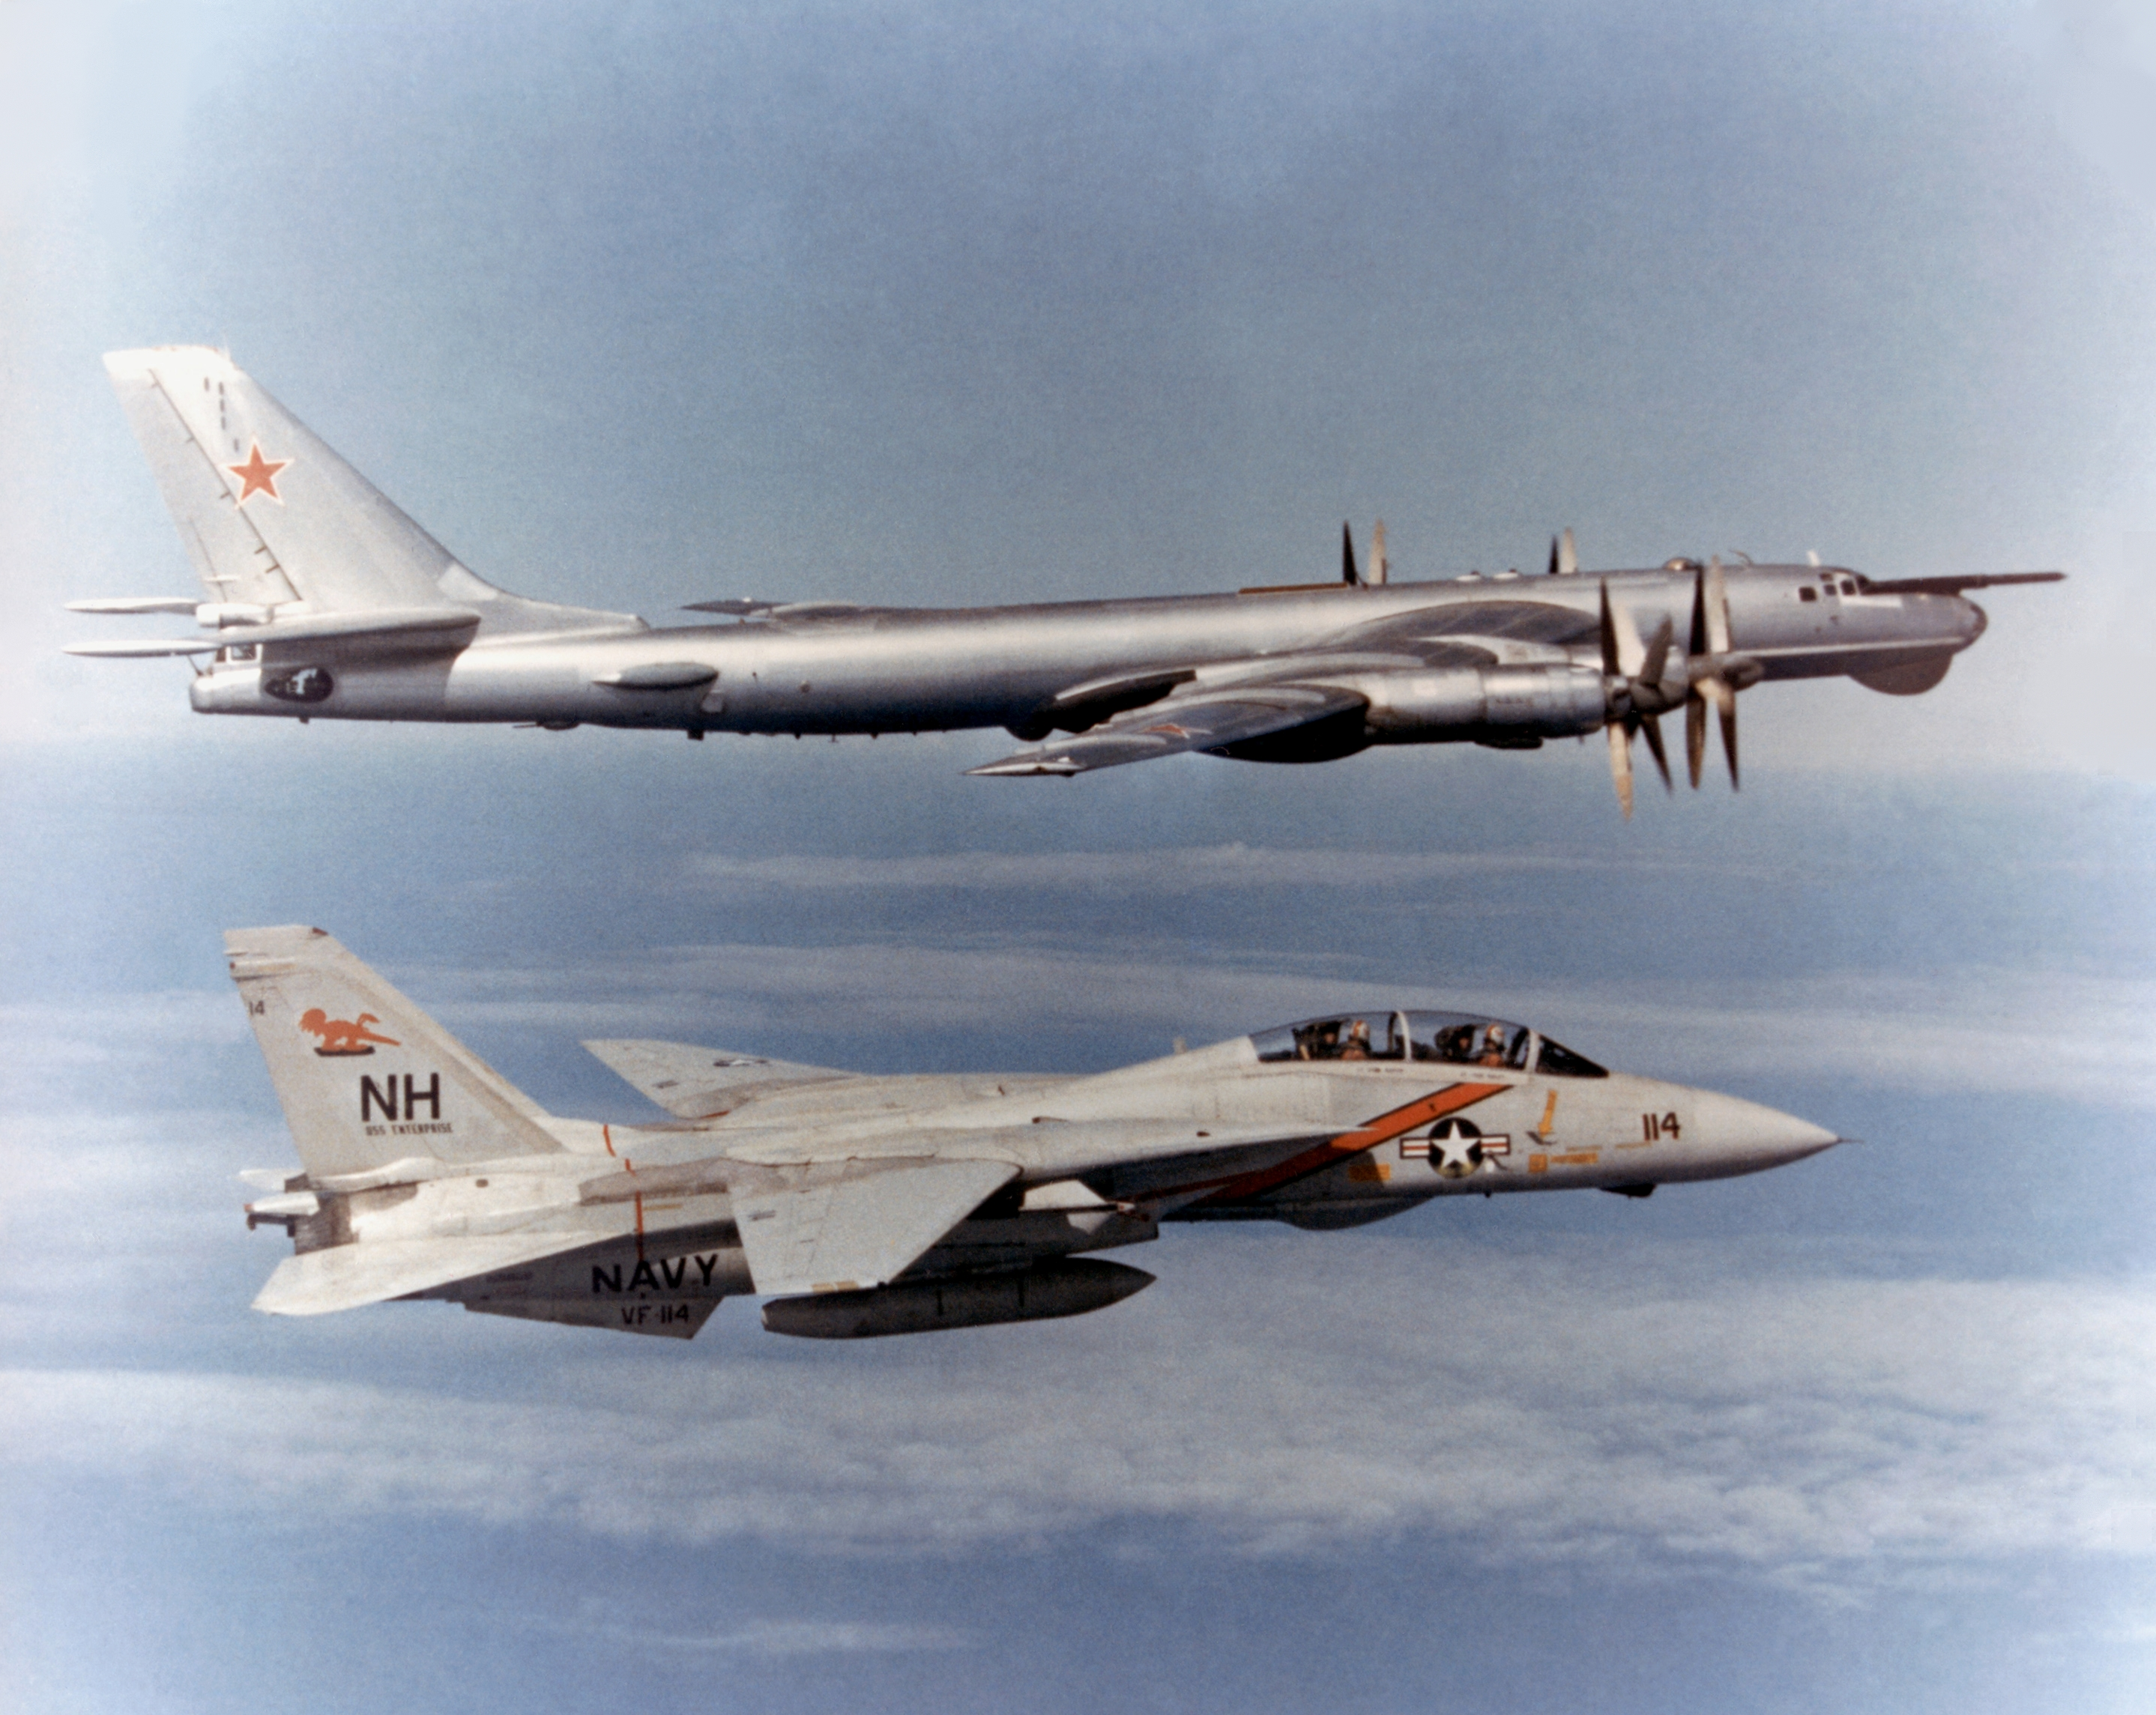 F-14_Tomcat_VF-114_escorting_TU-95_Bear